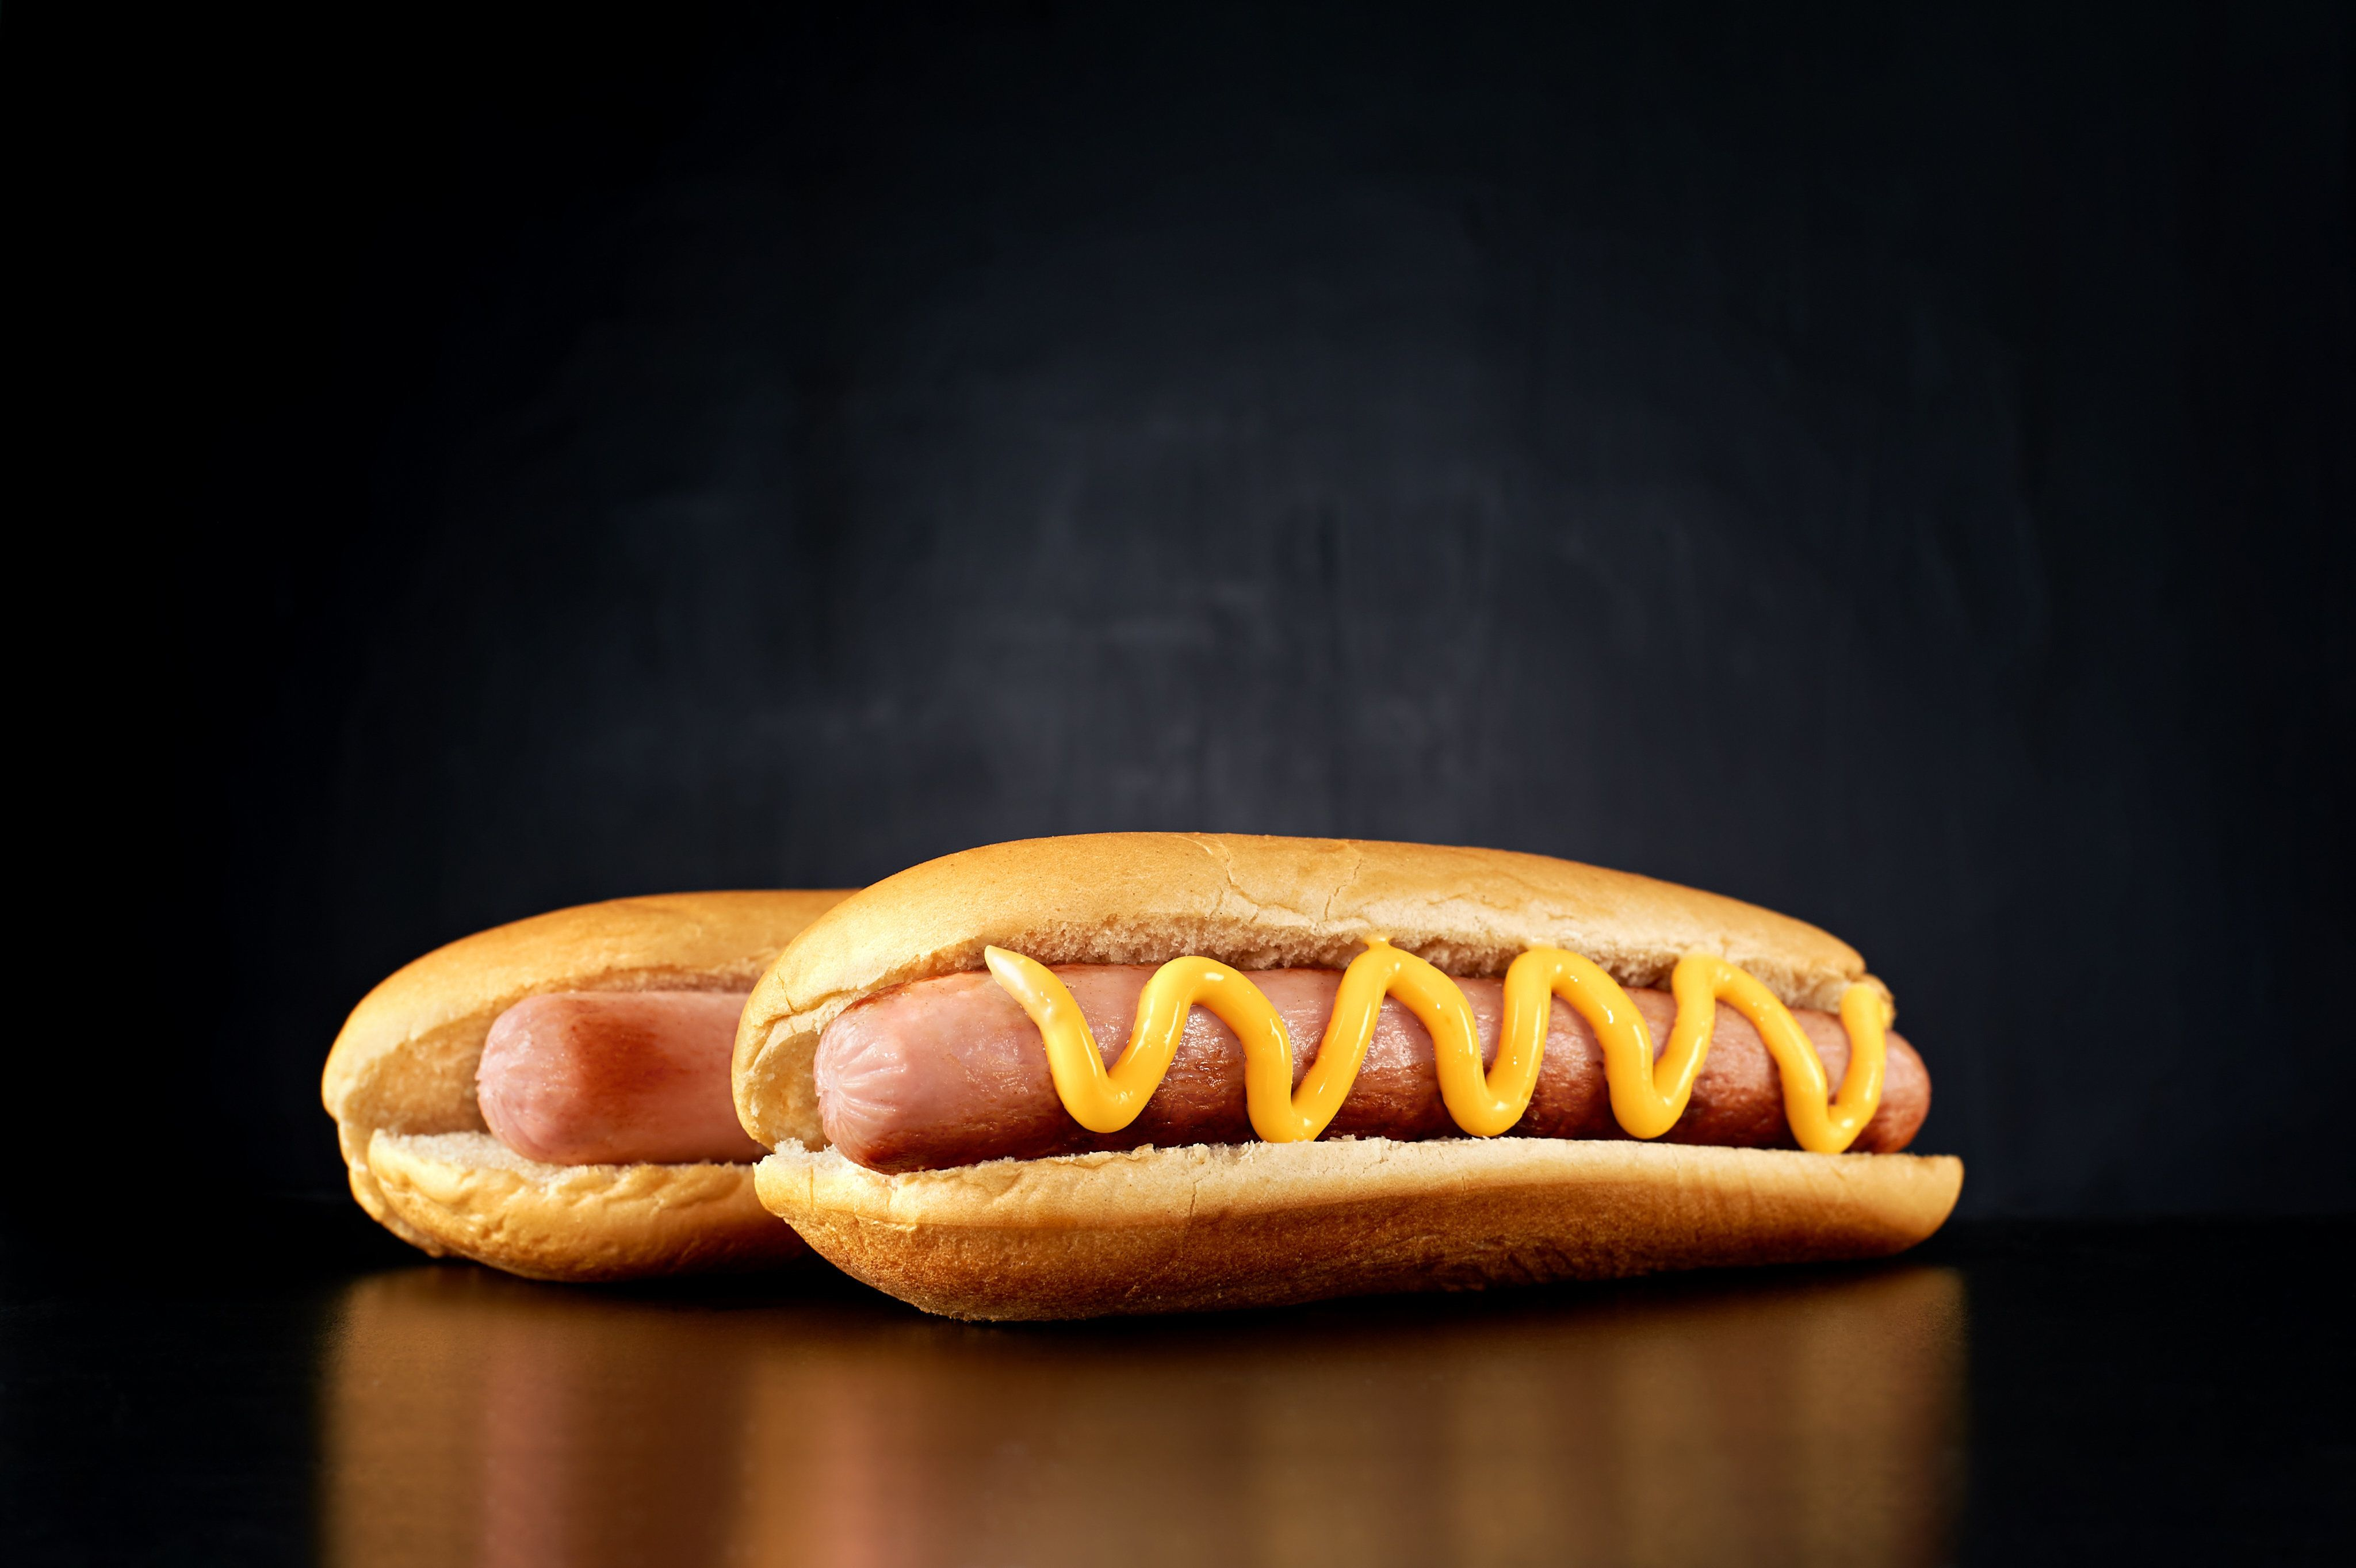 Speaking, recommend Why hot dog not penis consider, that